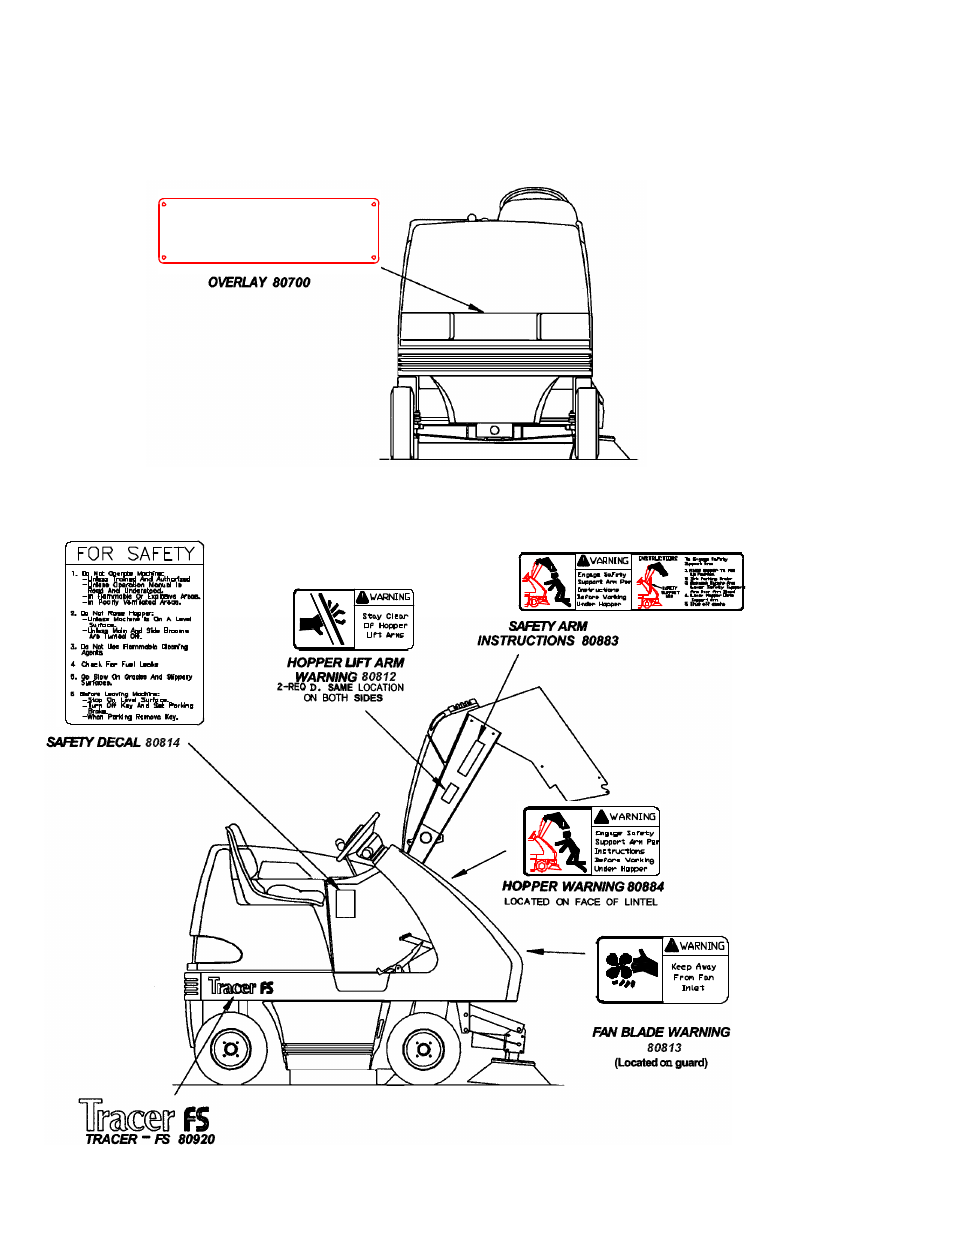 Safety Labels Safety Label Location Manual Guide